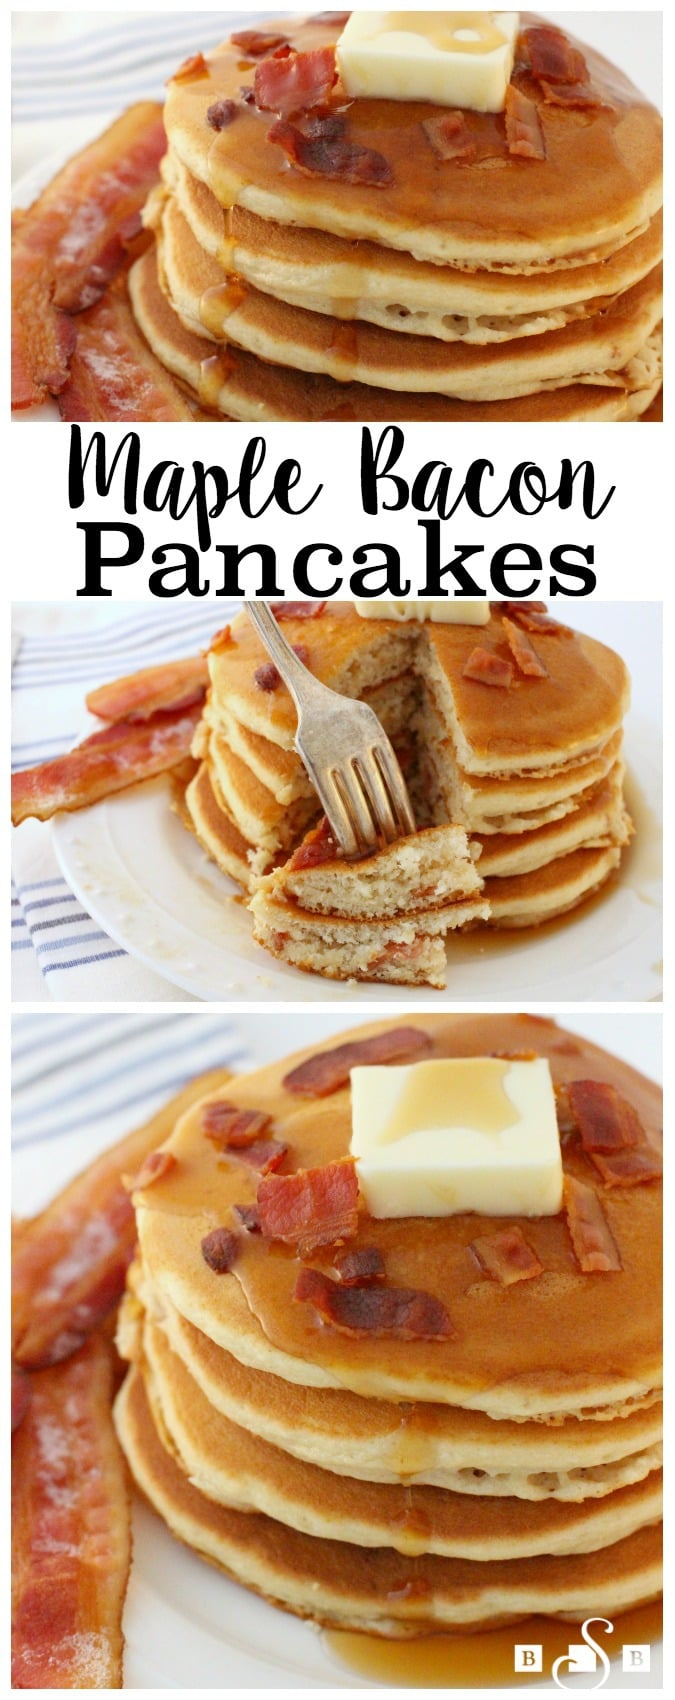 Happy Pancake Day! Yep, today is the day to celebrate this favorite breakfast food- and I've taken things up a notch with bacon of course! You'll love this simple, delicious recipe so much.